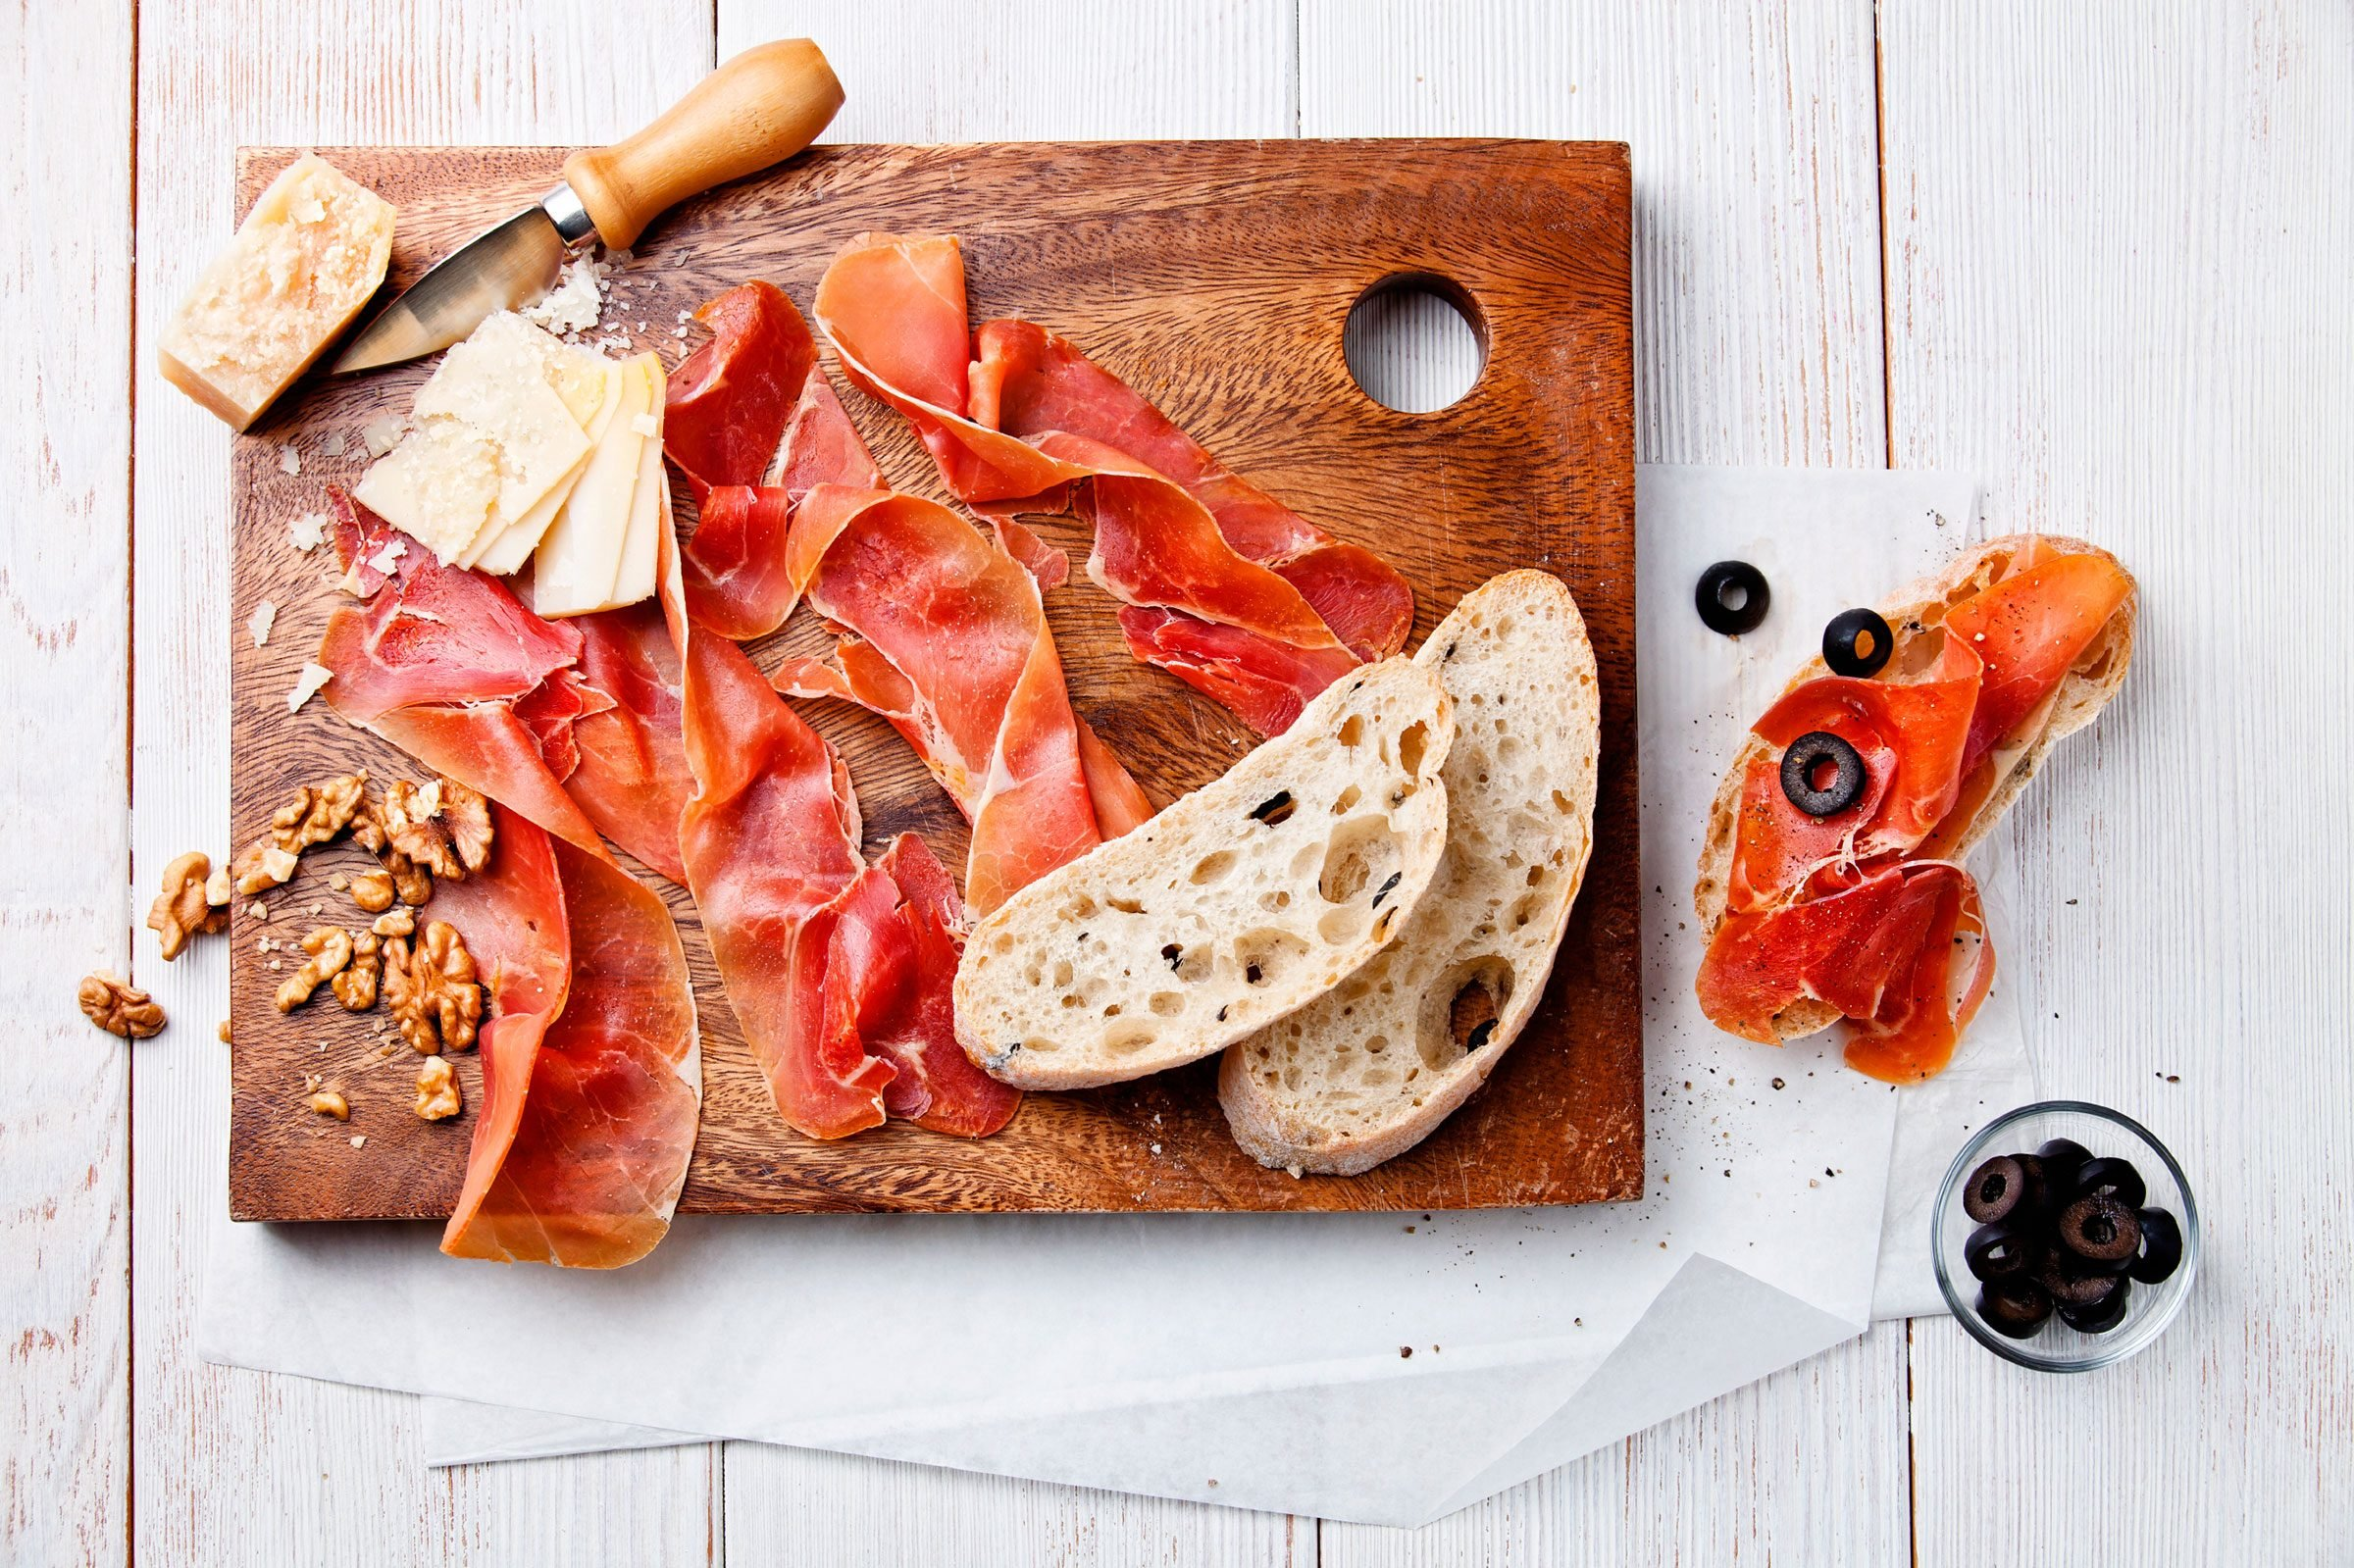 25 italian restaurant words prosciutto